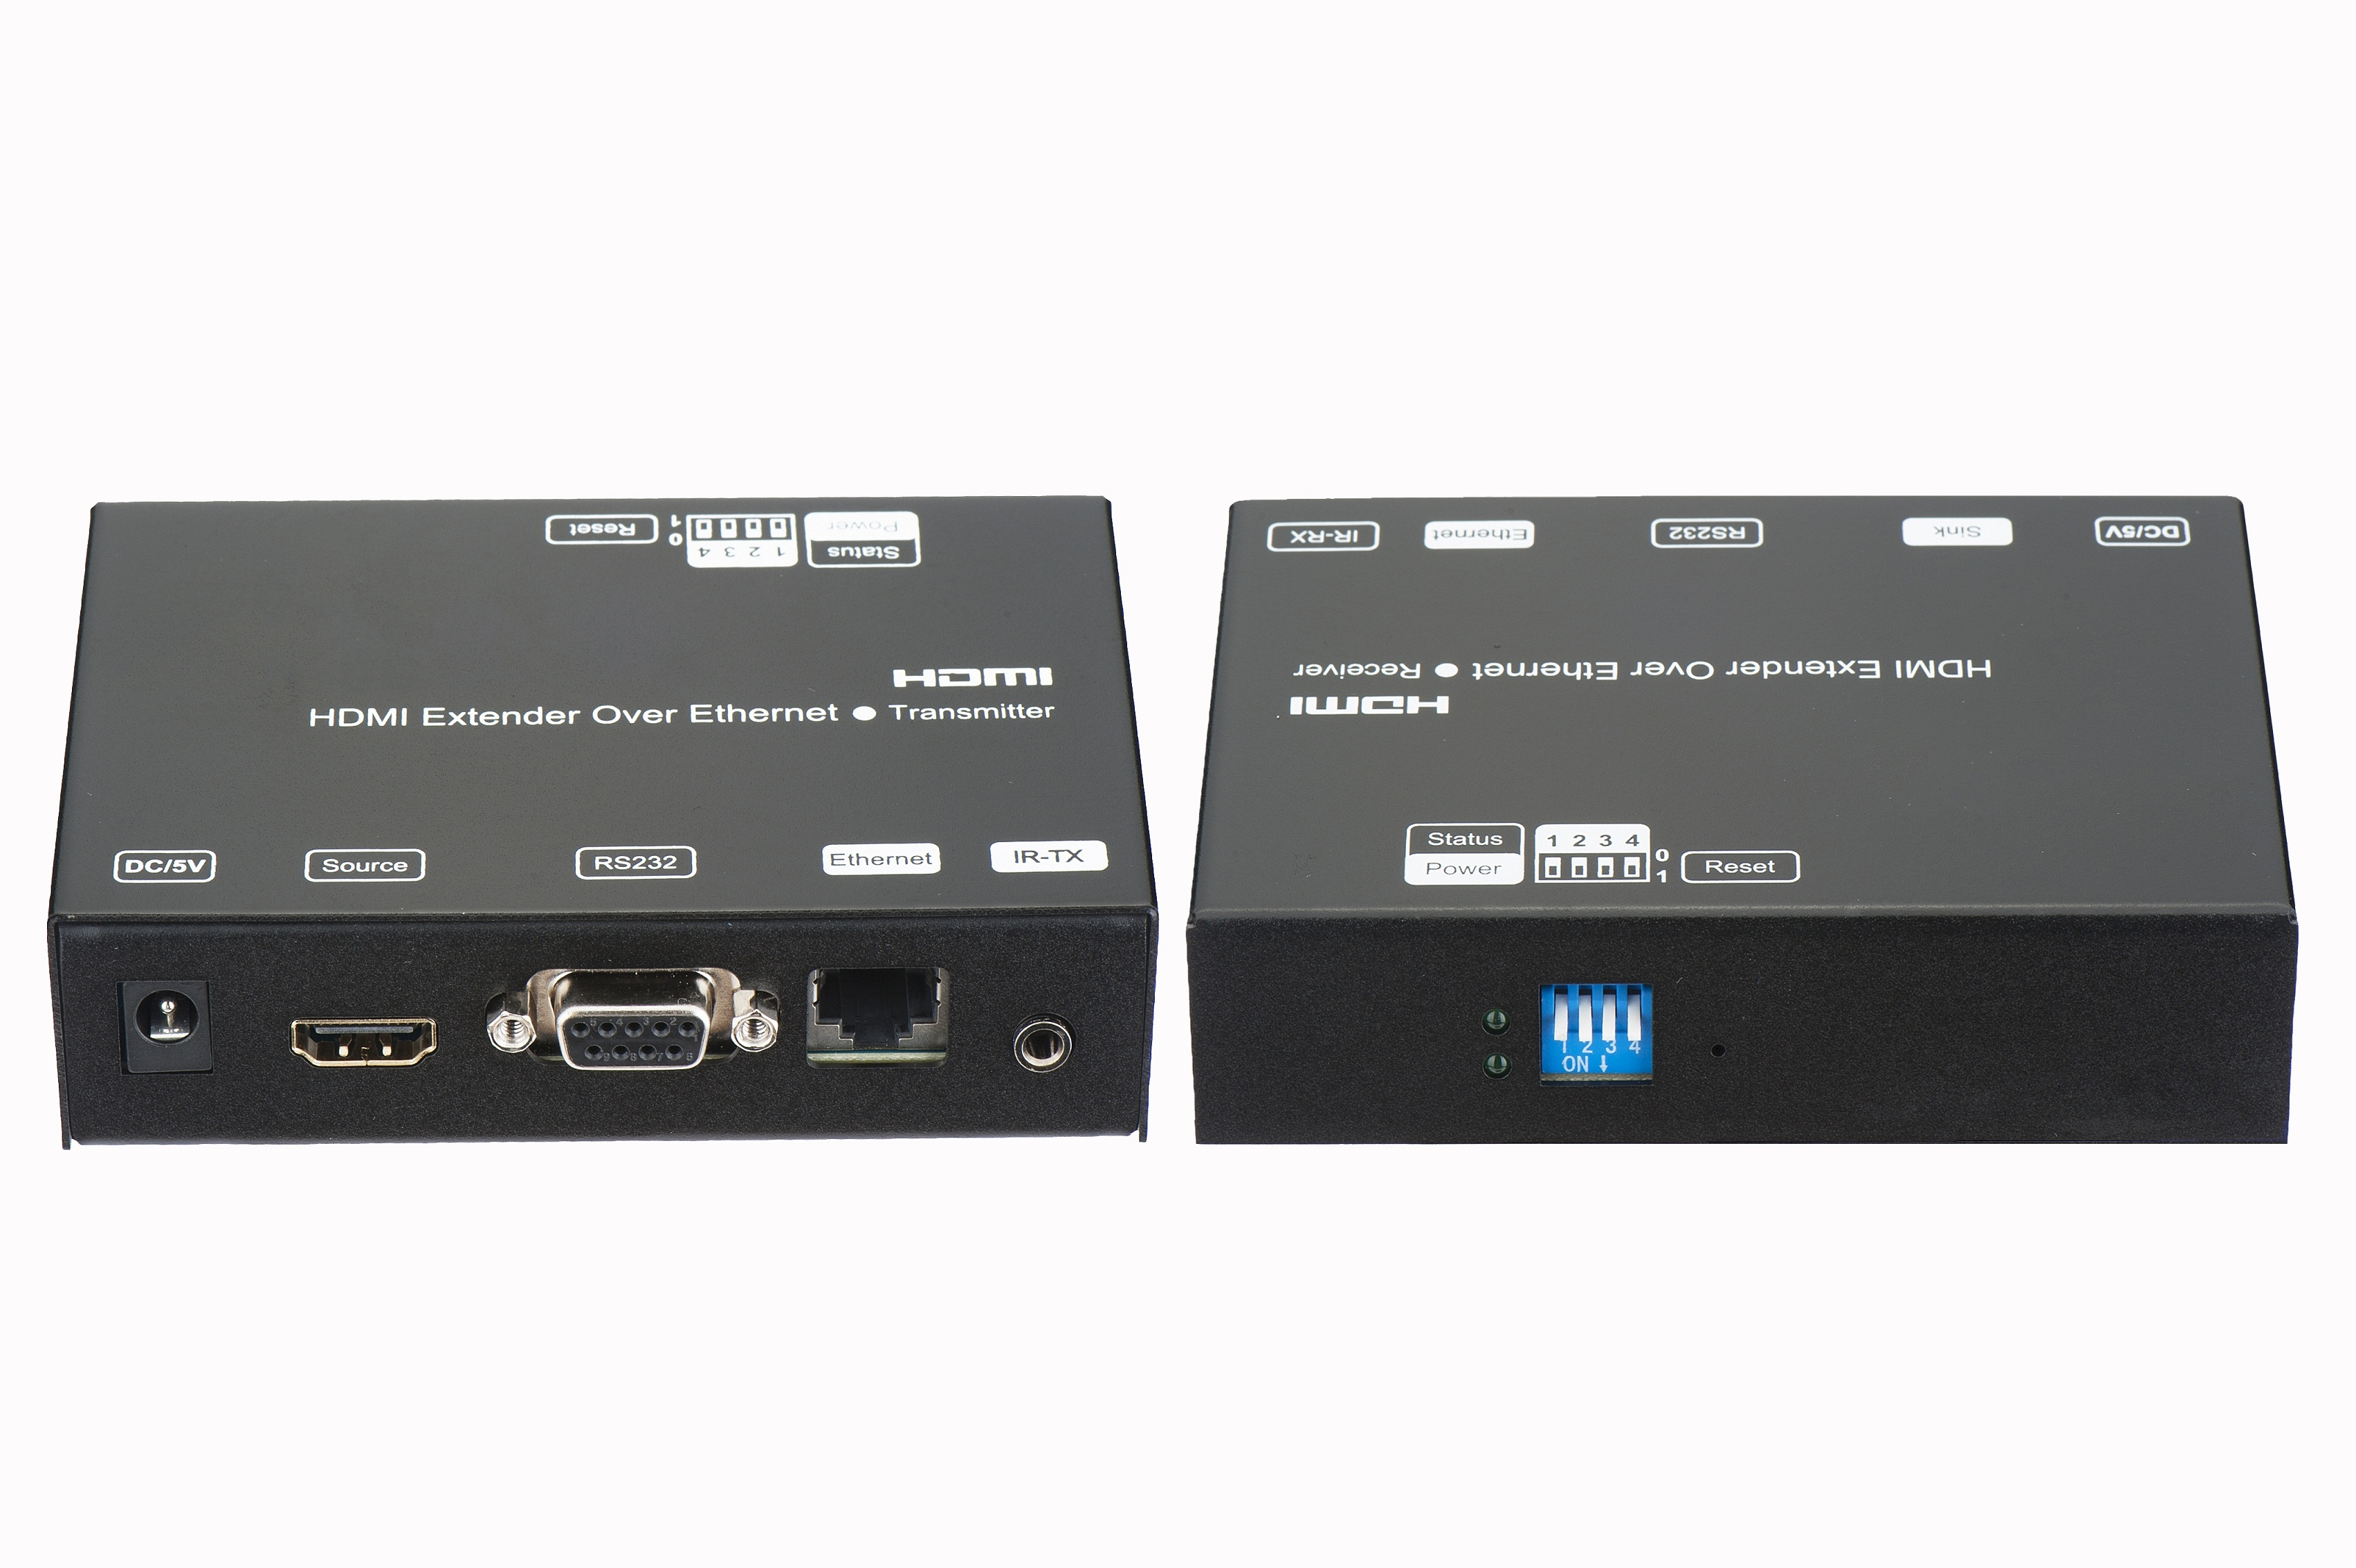 Sw Hdmi Rs232 Wiring Wire Data Schema Extender Diagram 120m Over Ip With Poe Rh Foxun Com Connector To Db9 Connection